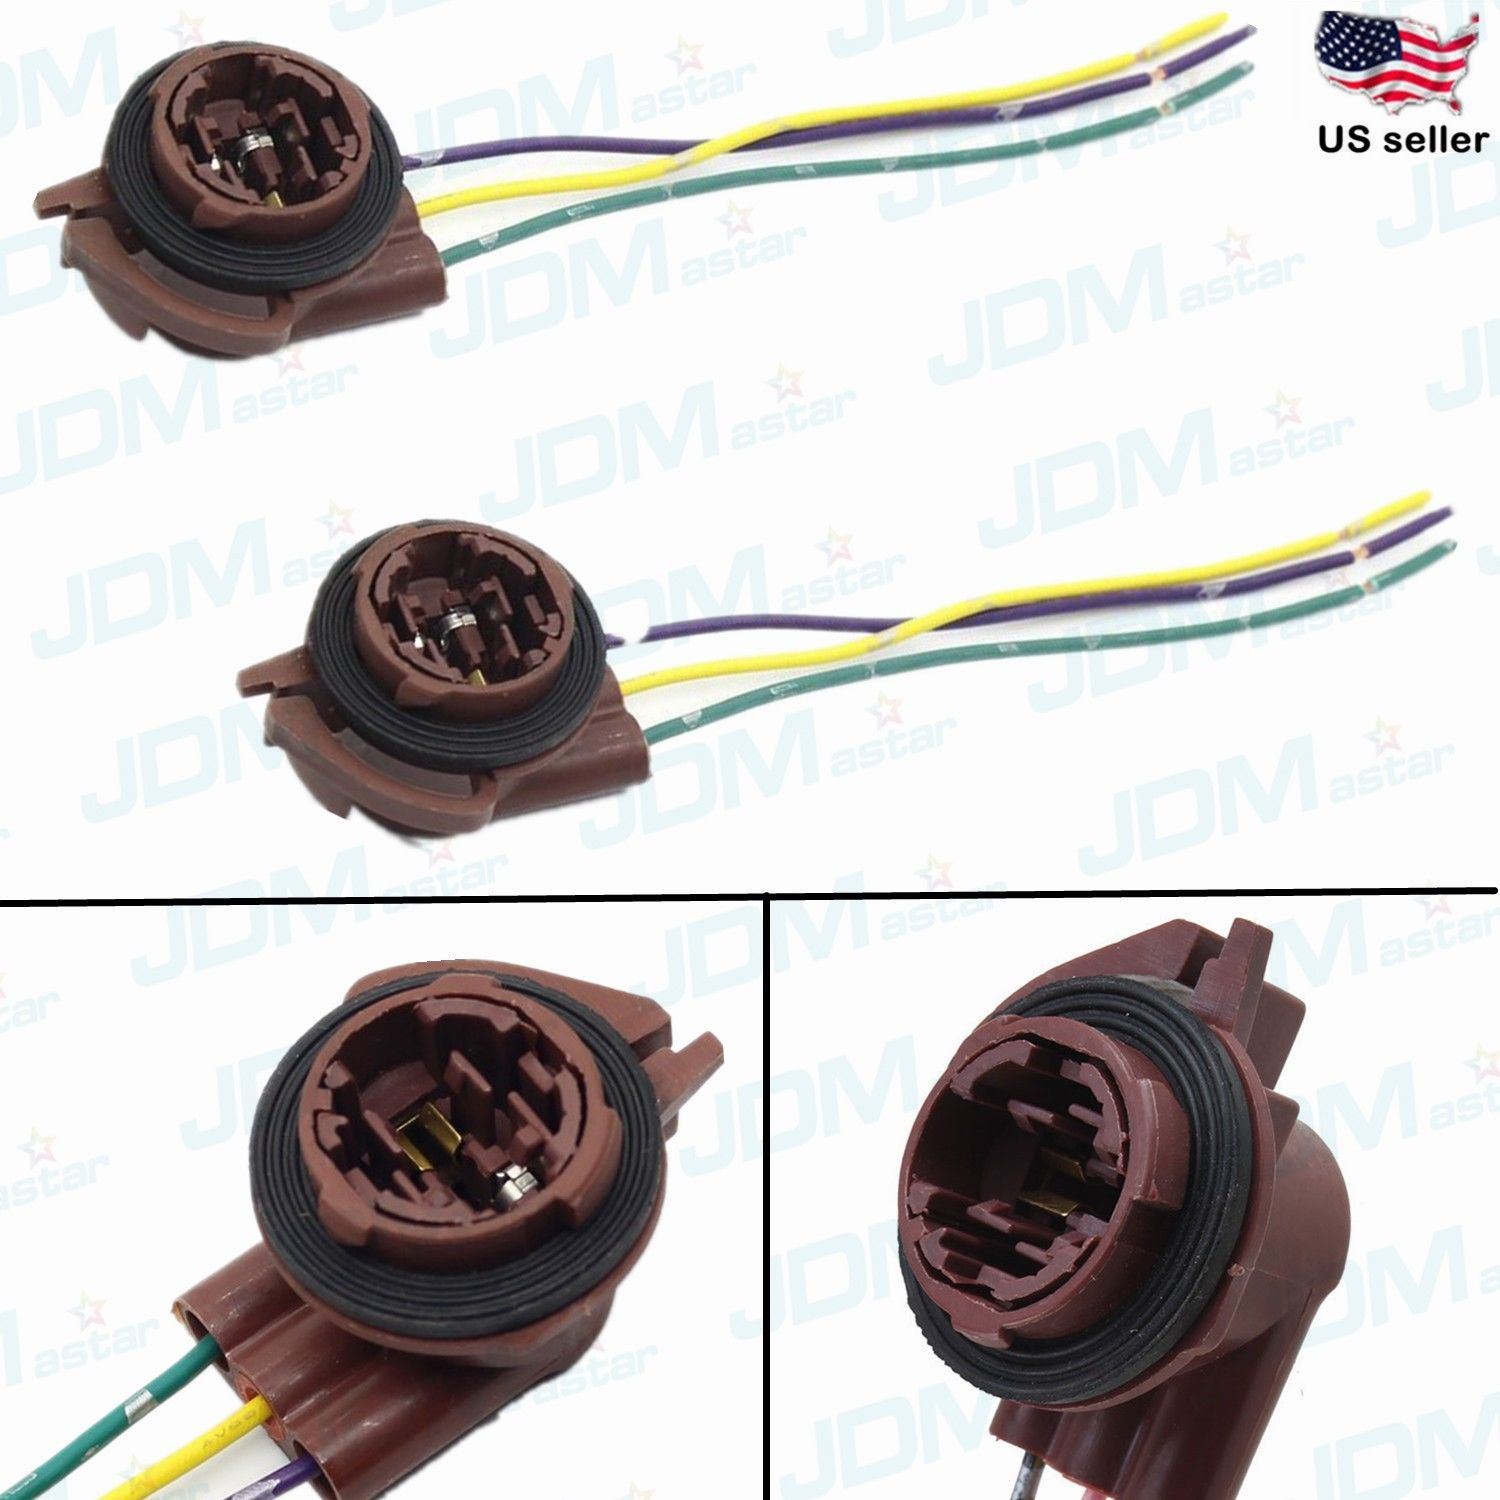 3157A socket harness 1?versionId=luZVsWTmtBB0K6WrOp6TCHwbqxcaKjlO jdm astar 3157 4157na bulb socket turn signal light harness wire  at readyjetset.co